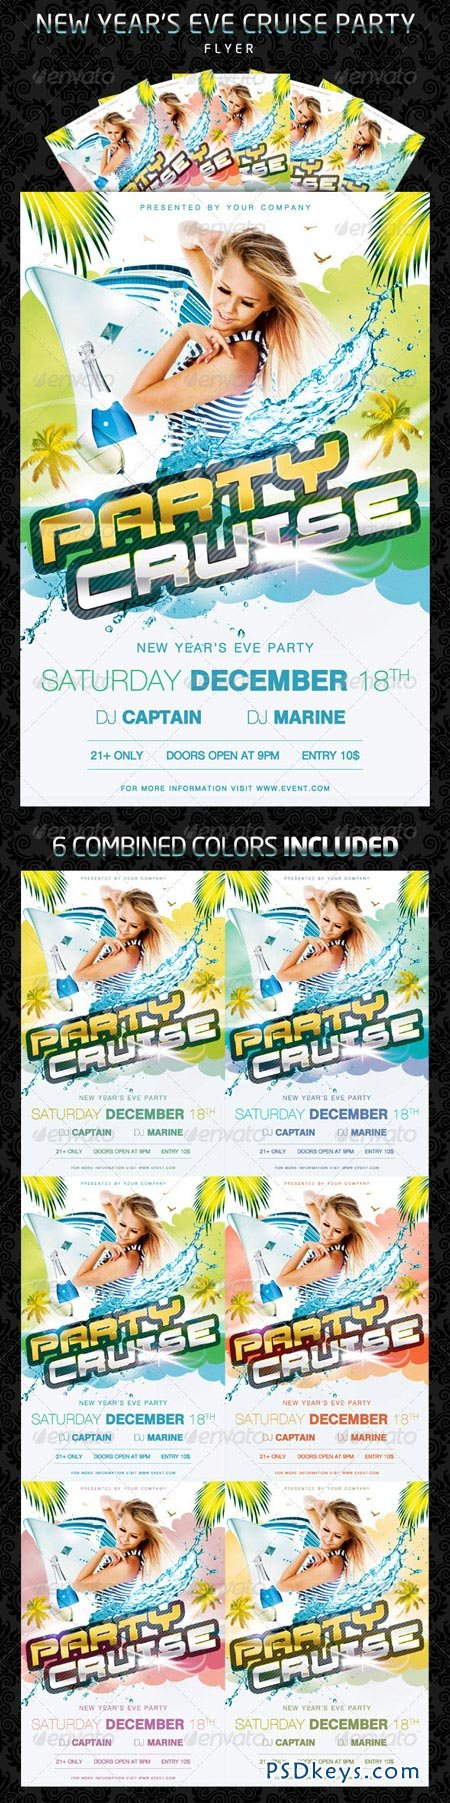 Party Cruise Flyer 926382